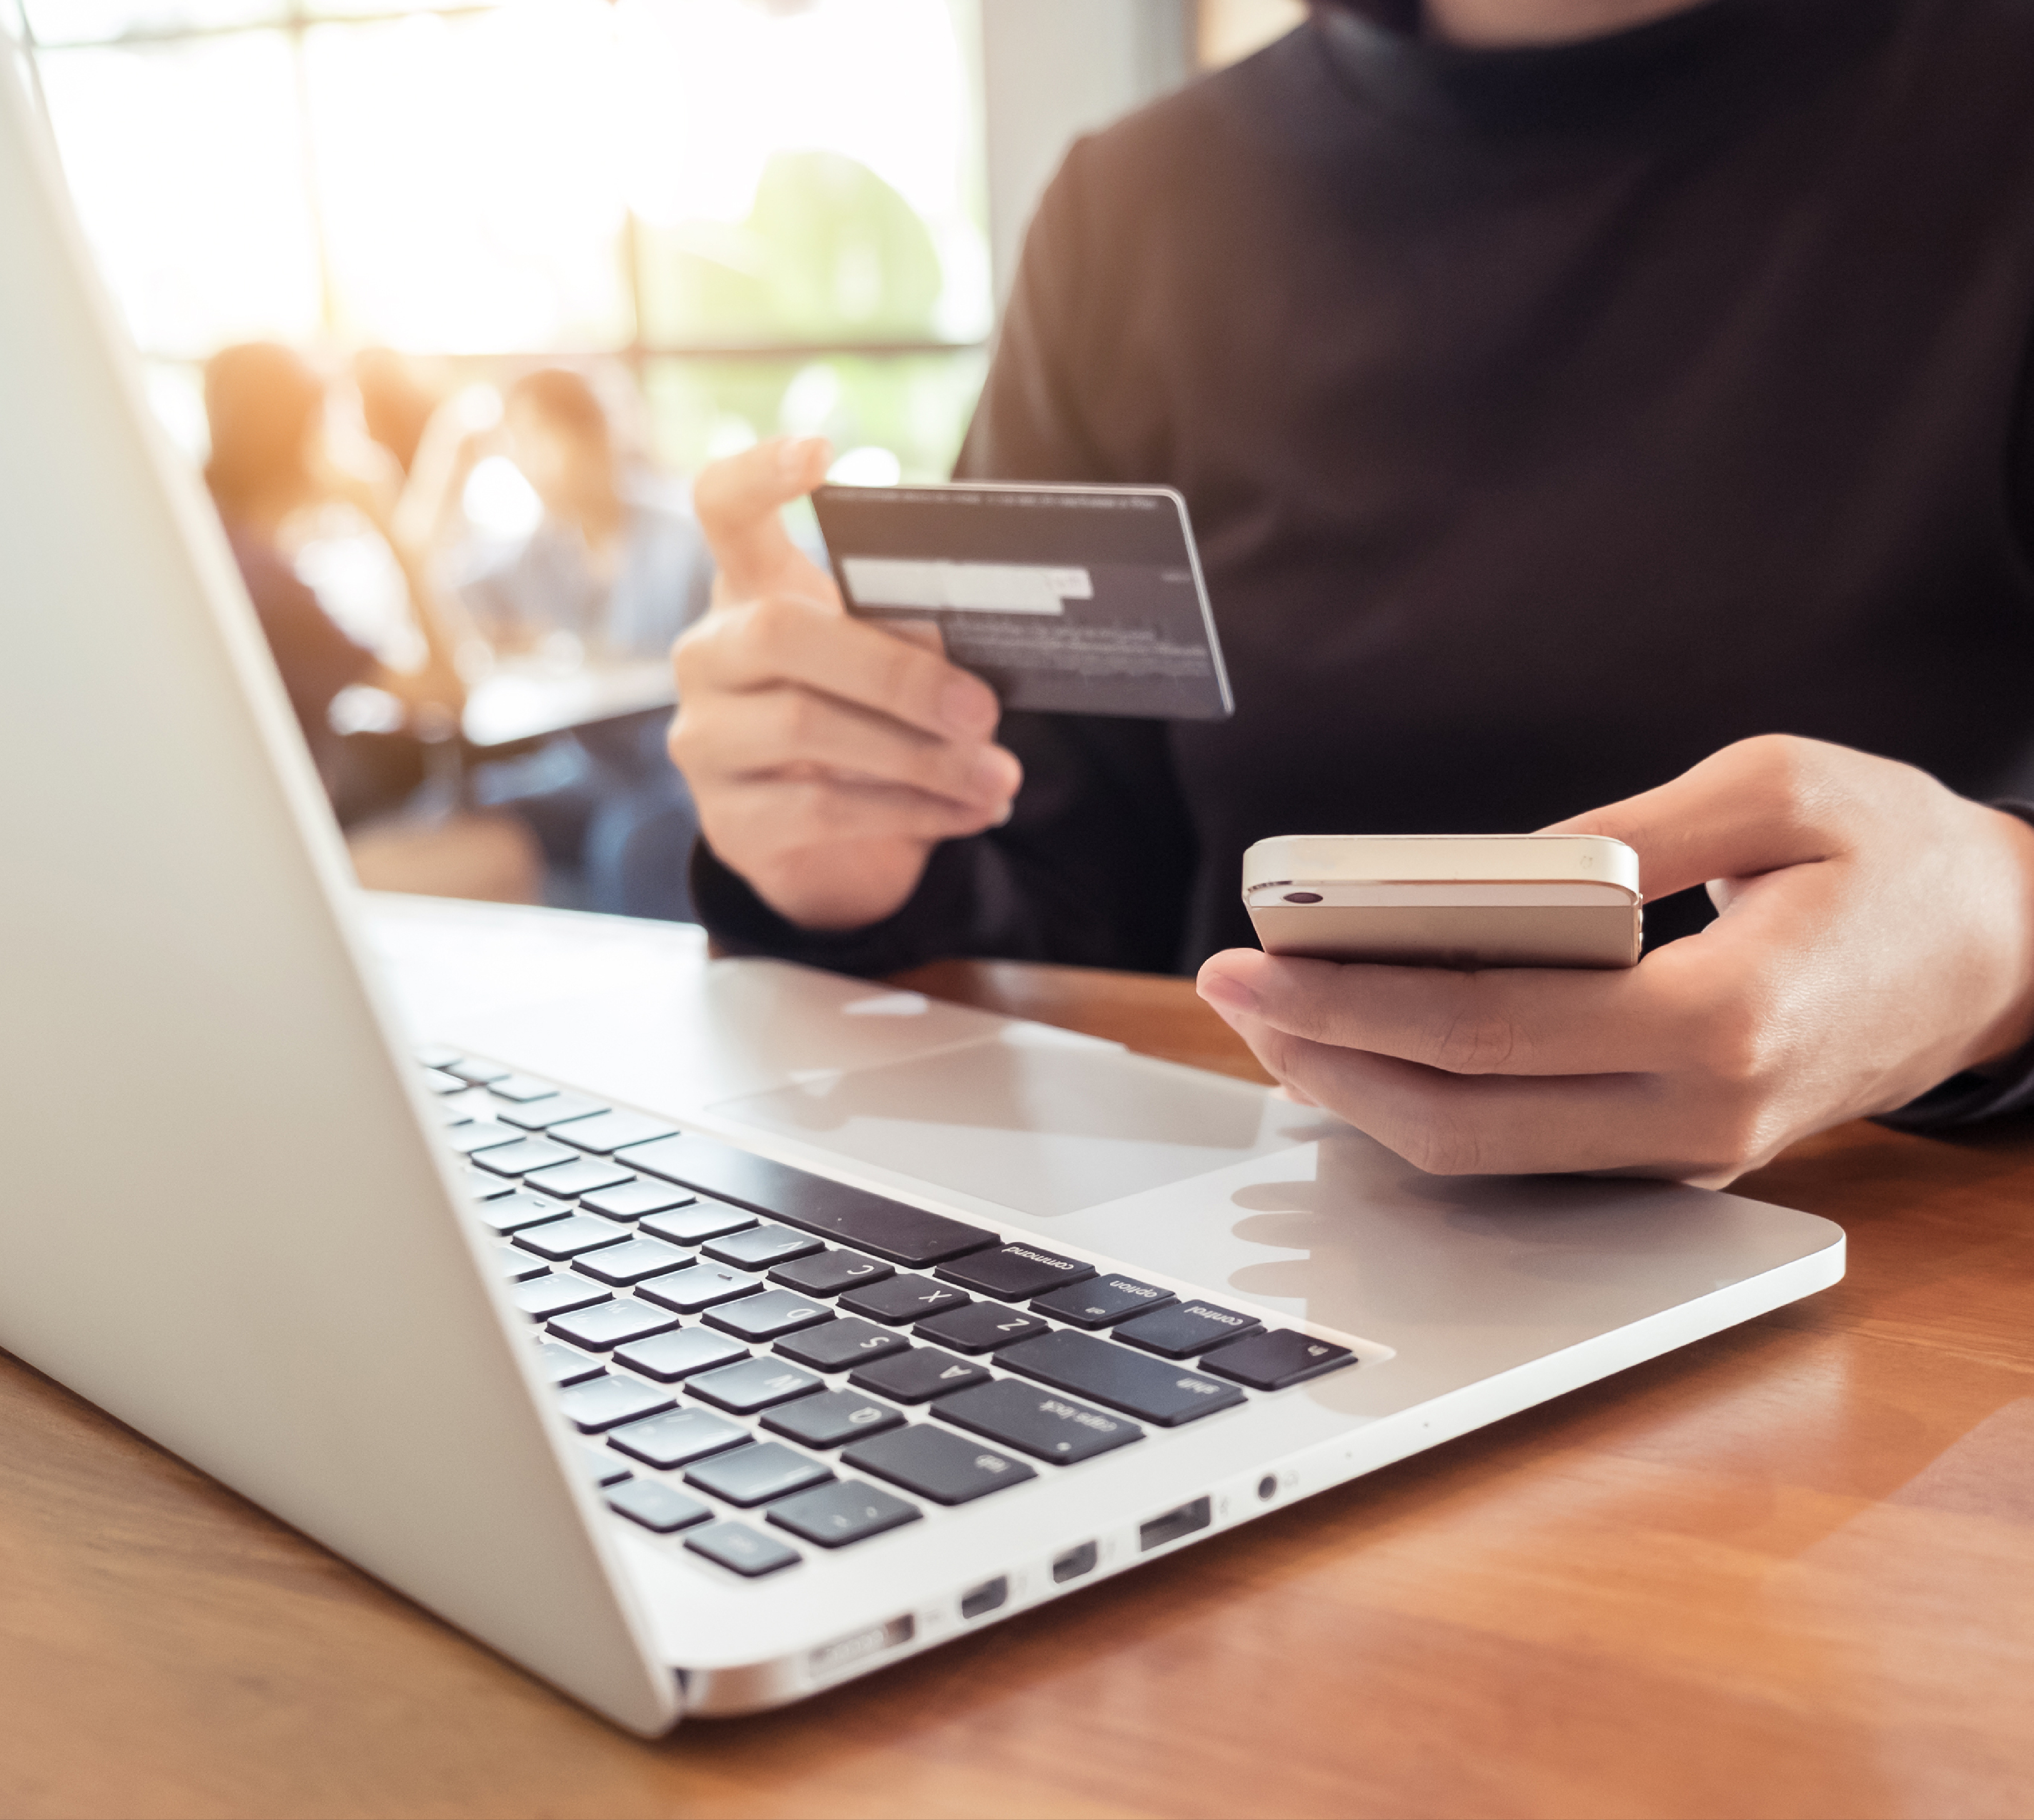 Ecommerce payment trends in Brazil: industry experts discuss the subject